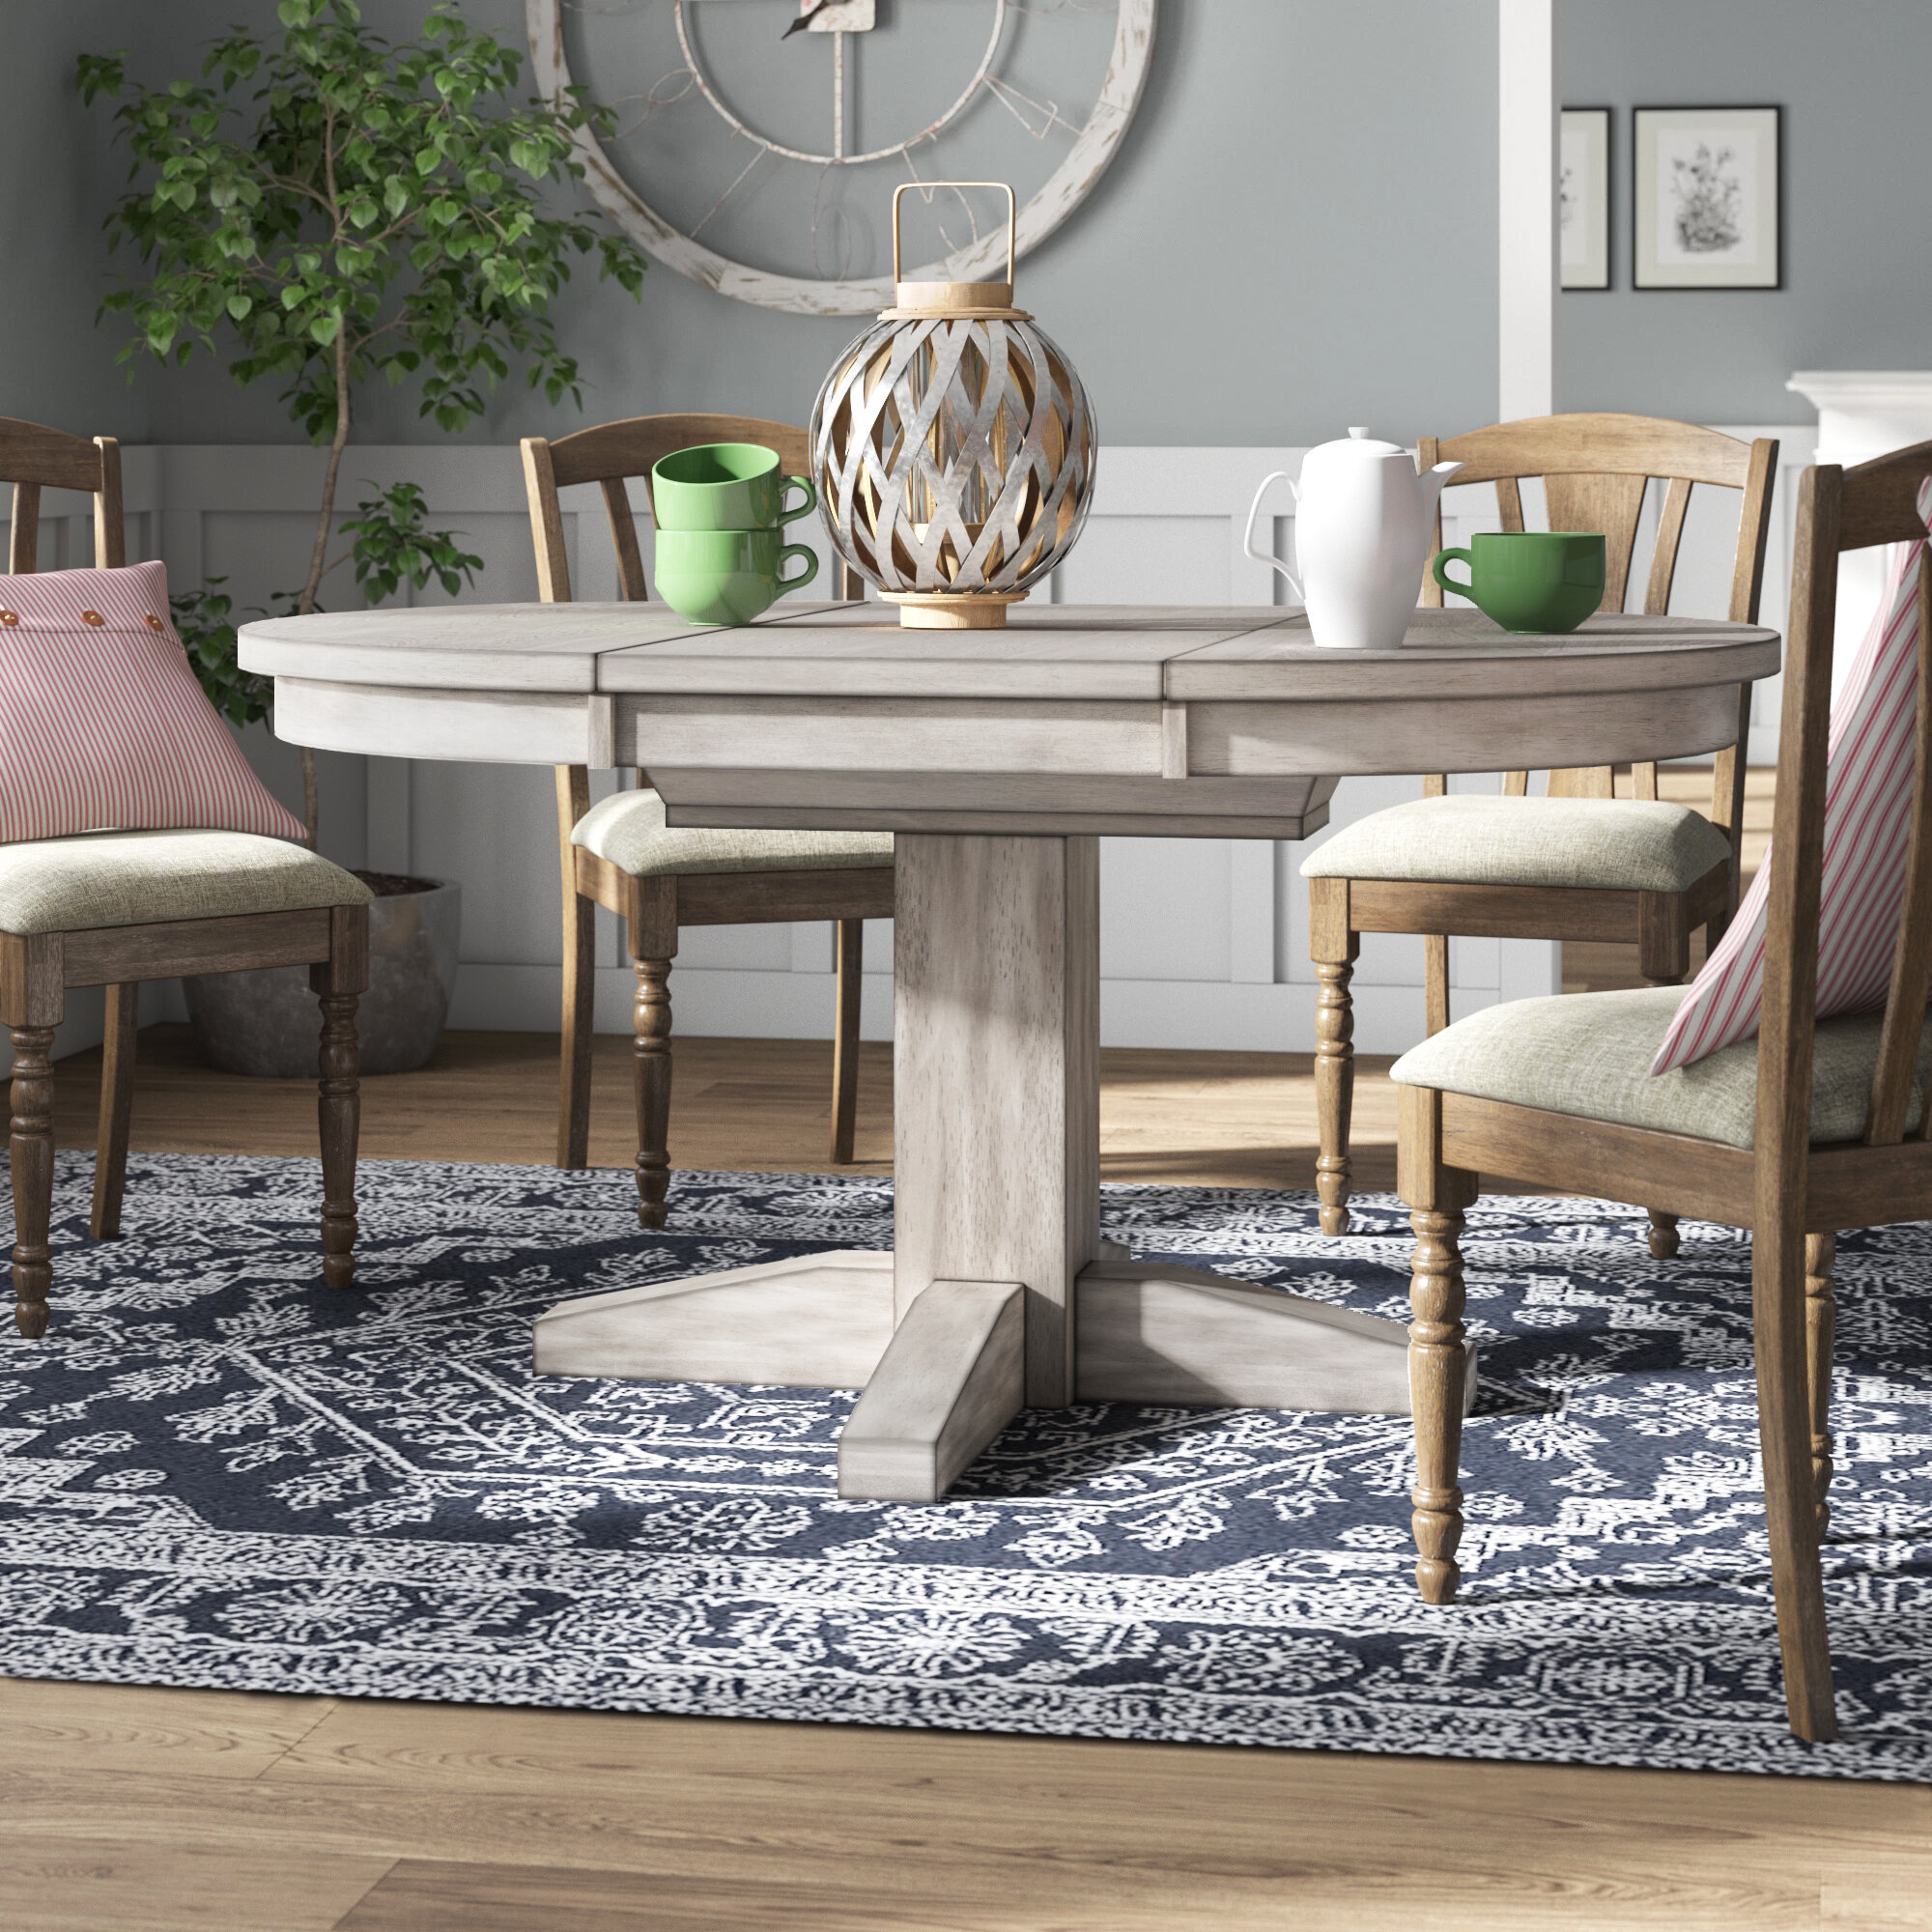 Butterfly Leaf Round Kitchen Dining Tables You Ll Love In 2021 Wayfair